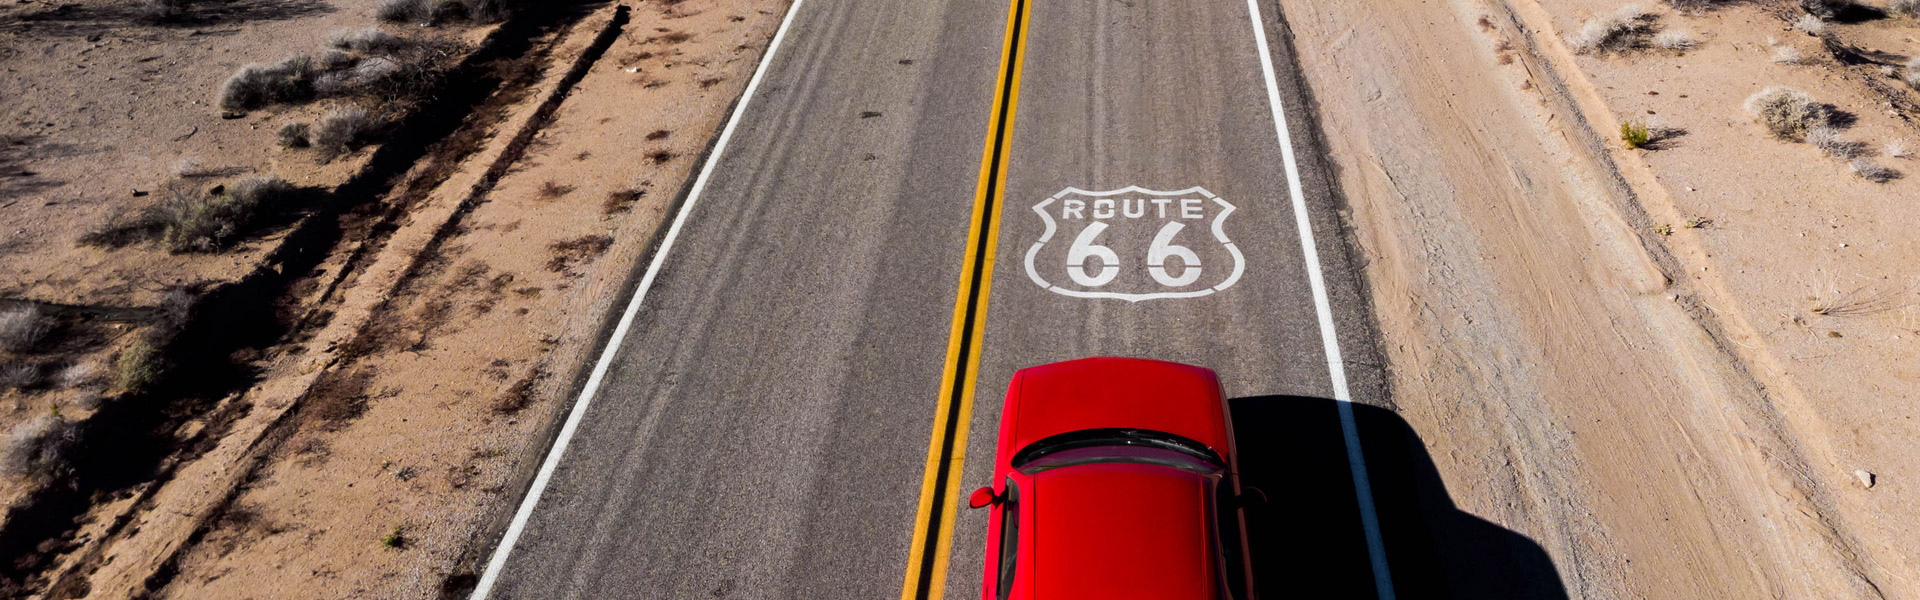 Red car on road trip down route 66